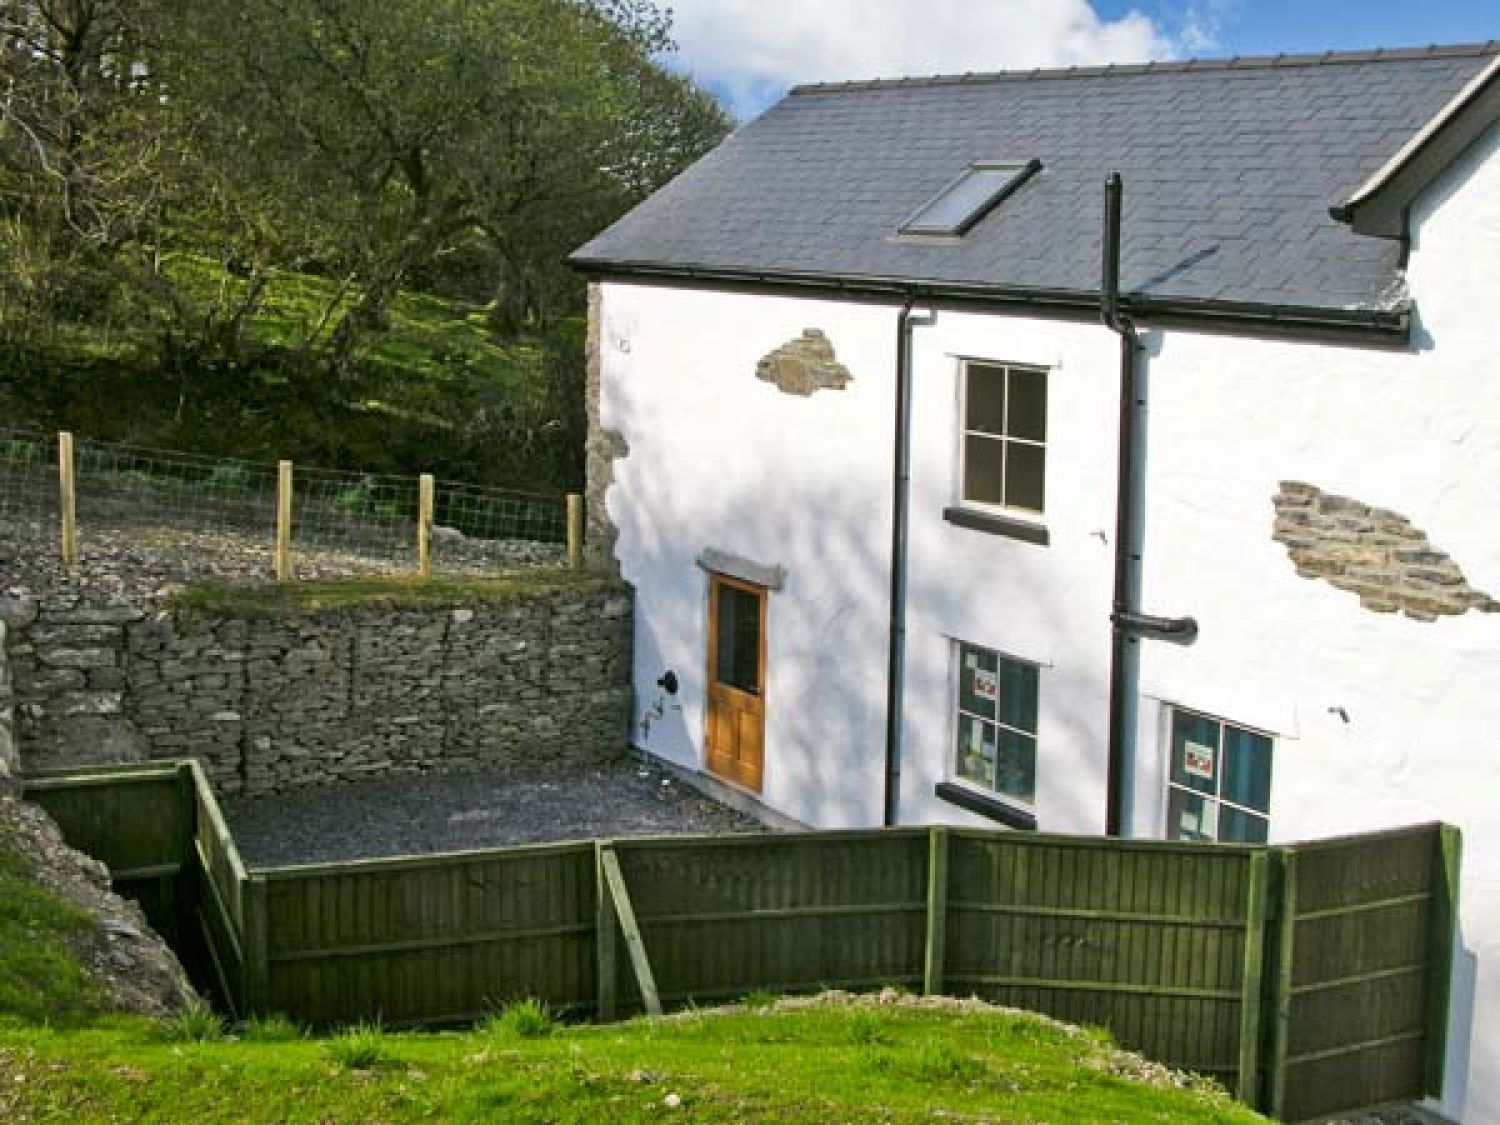 buzzards view eglwysbach esgair ebrill self catering holiday